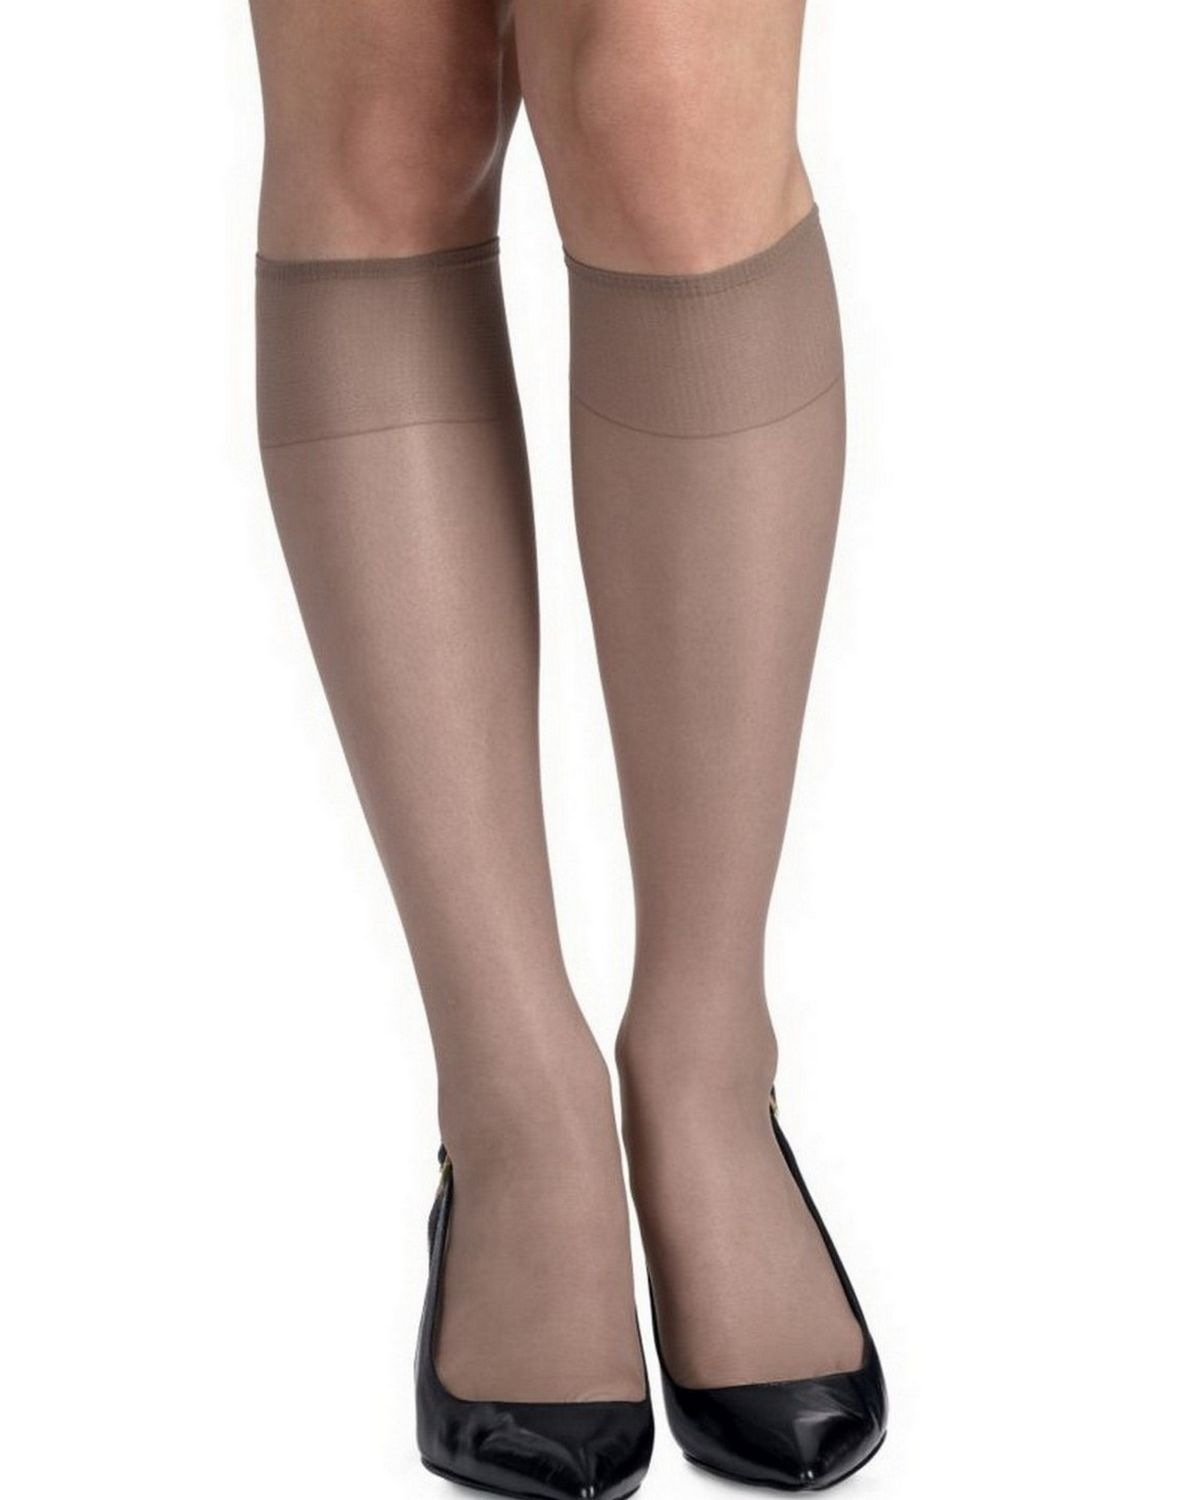 Hanes 775 Women's Silk Reflections Silky Sheer Knee Highs Reinforced Toe 2-Pack - Soft Taupe - One Size #silk